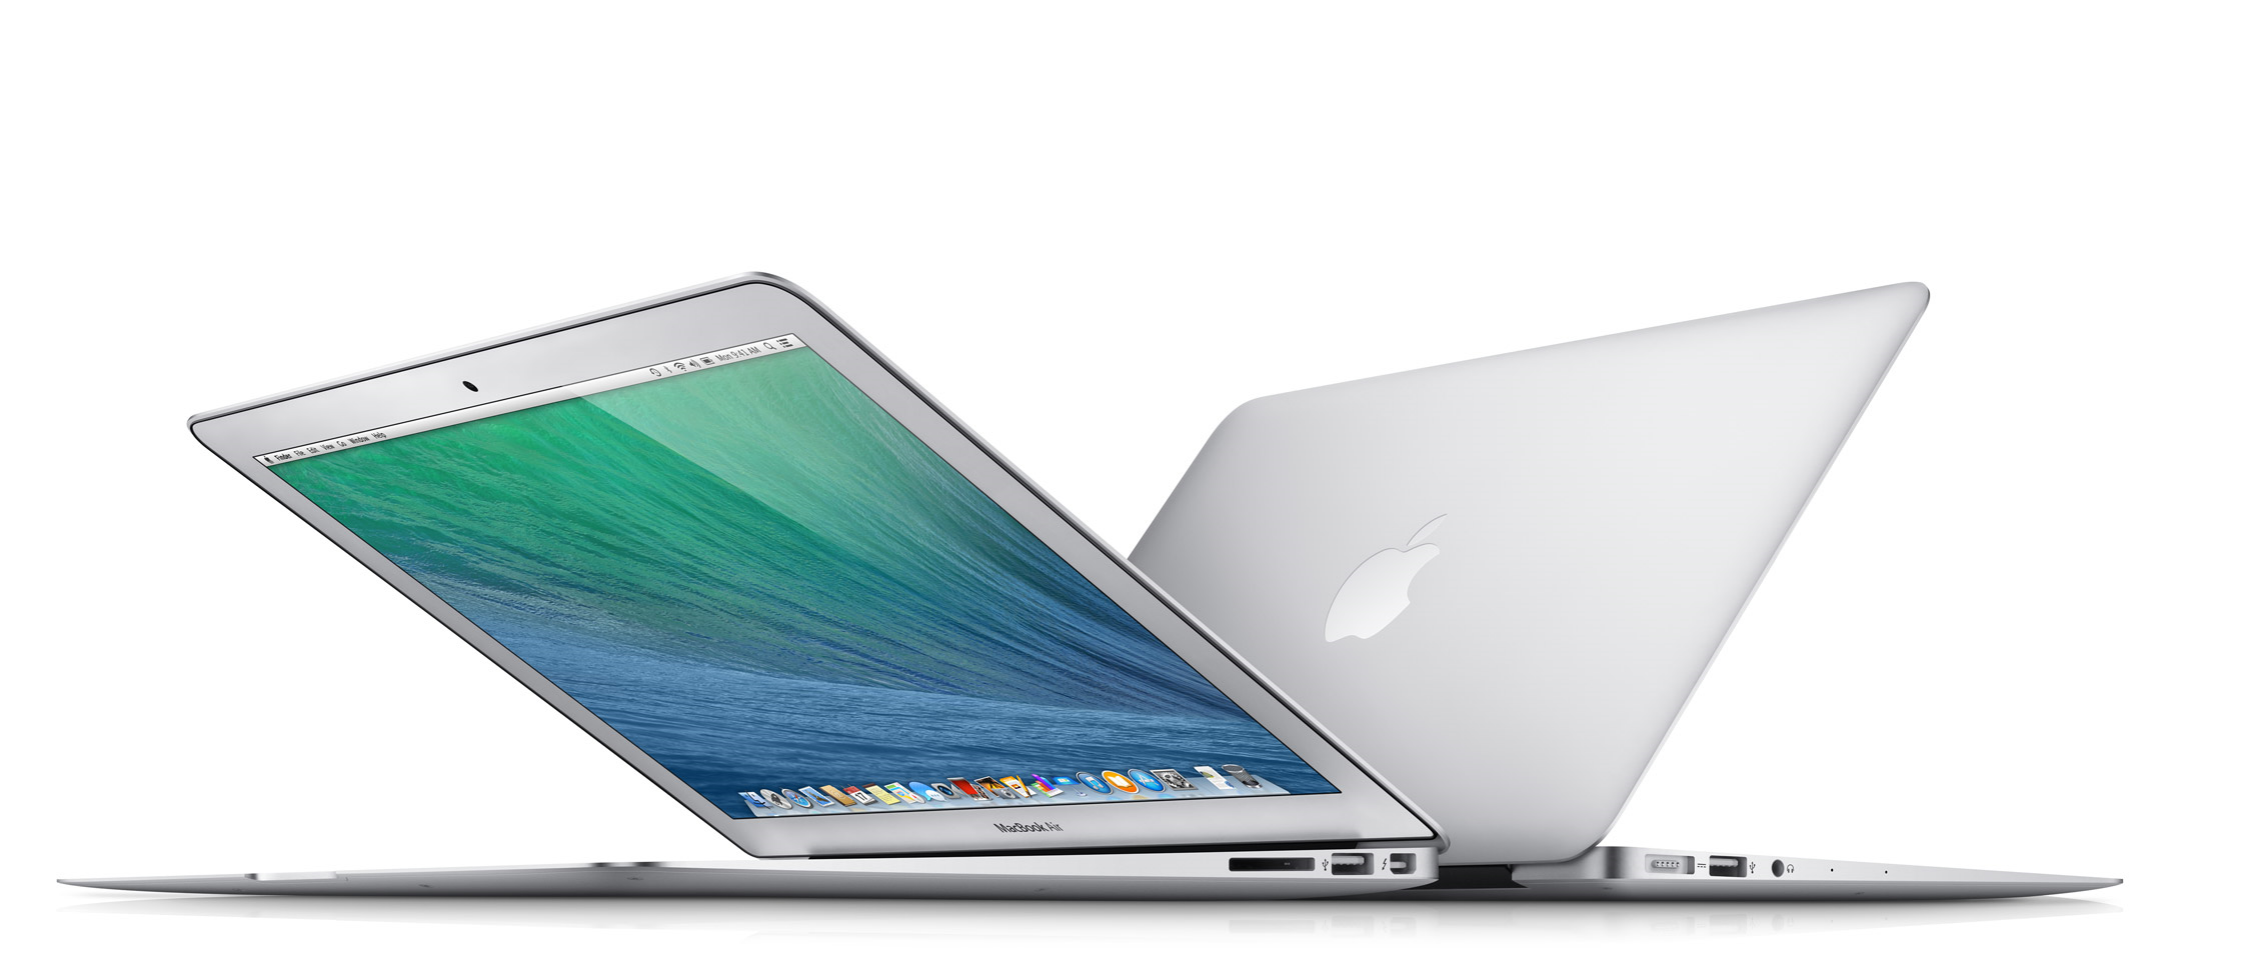 MacBook-Air-mid-2013-more-portable.jpg